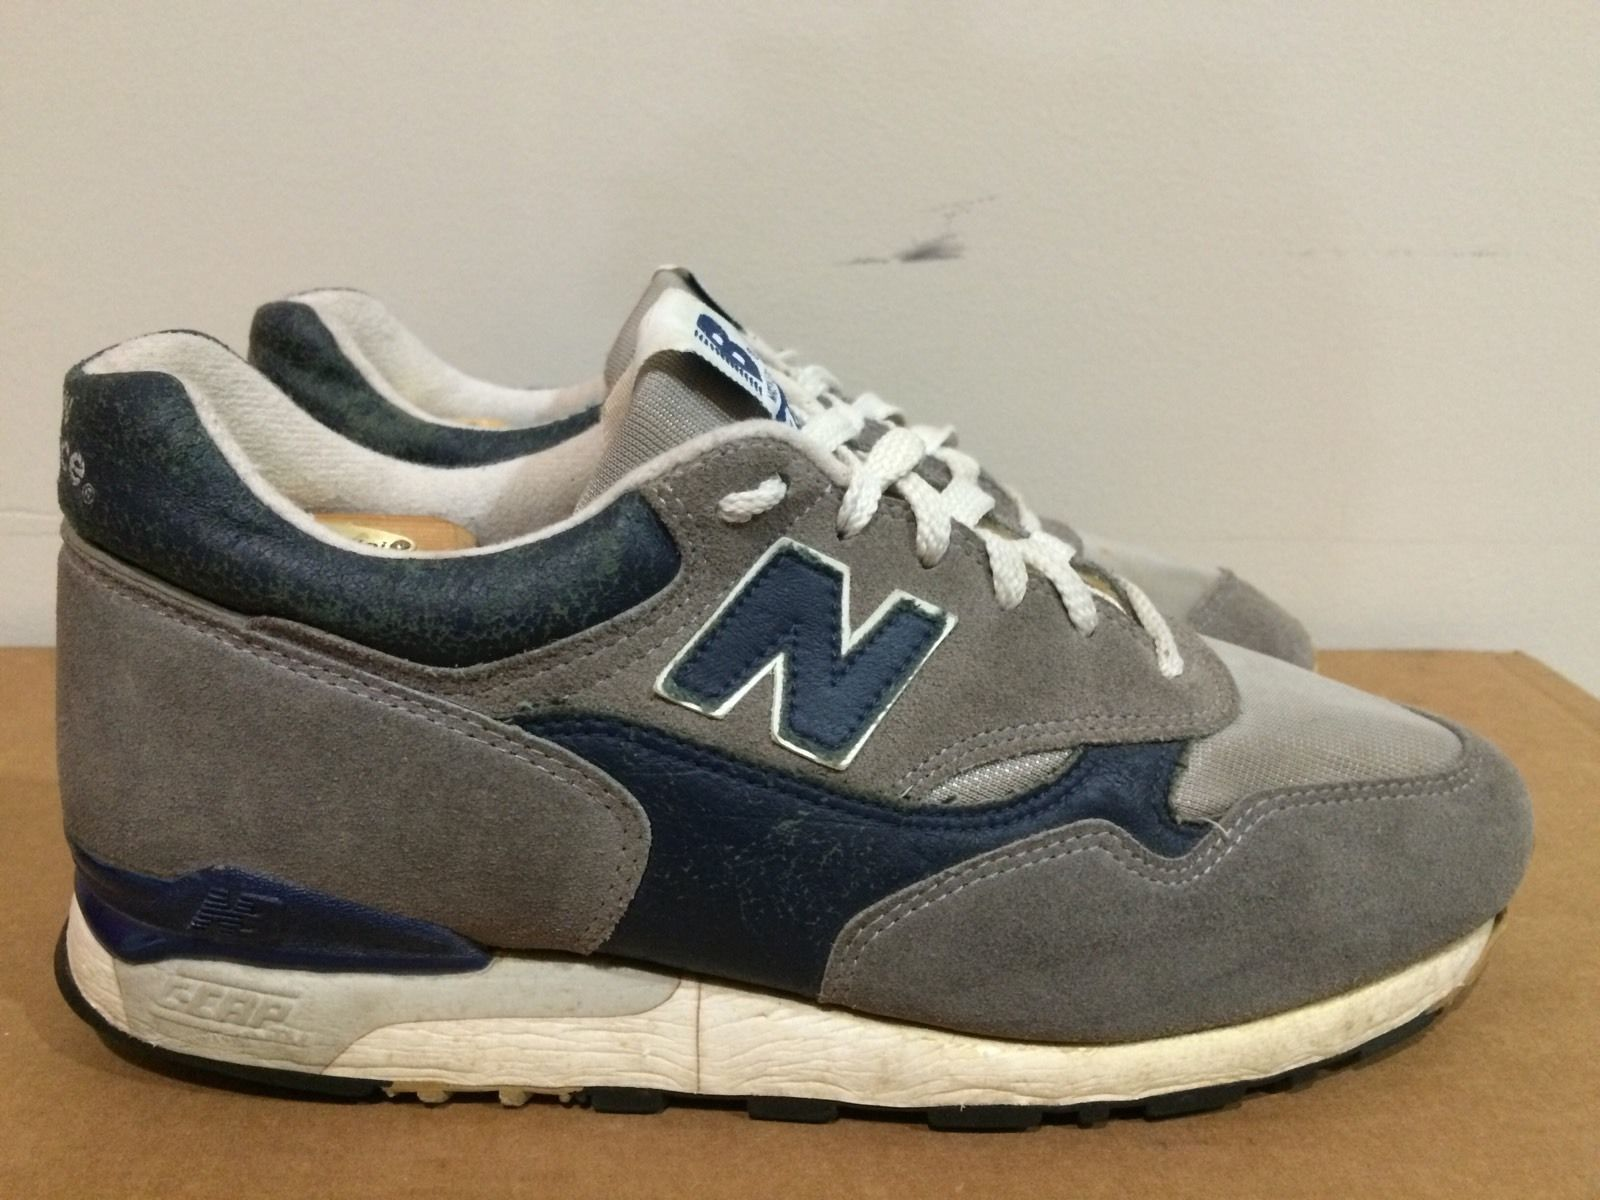 8815e7f42feda Details about New Balance 495 1990s Rare Vintage Made In USA Size 8 ...